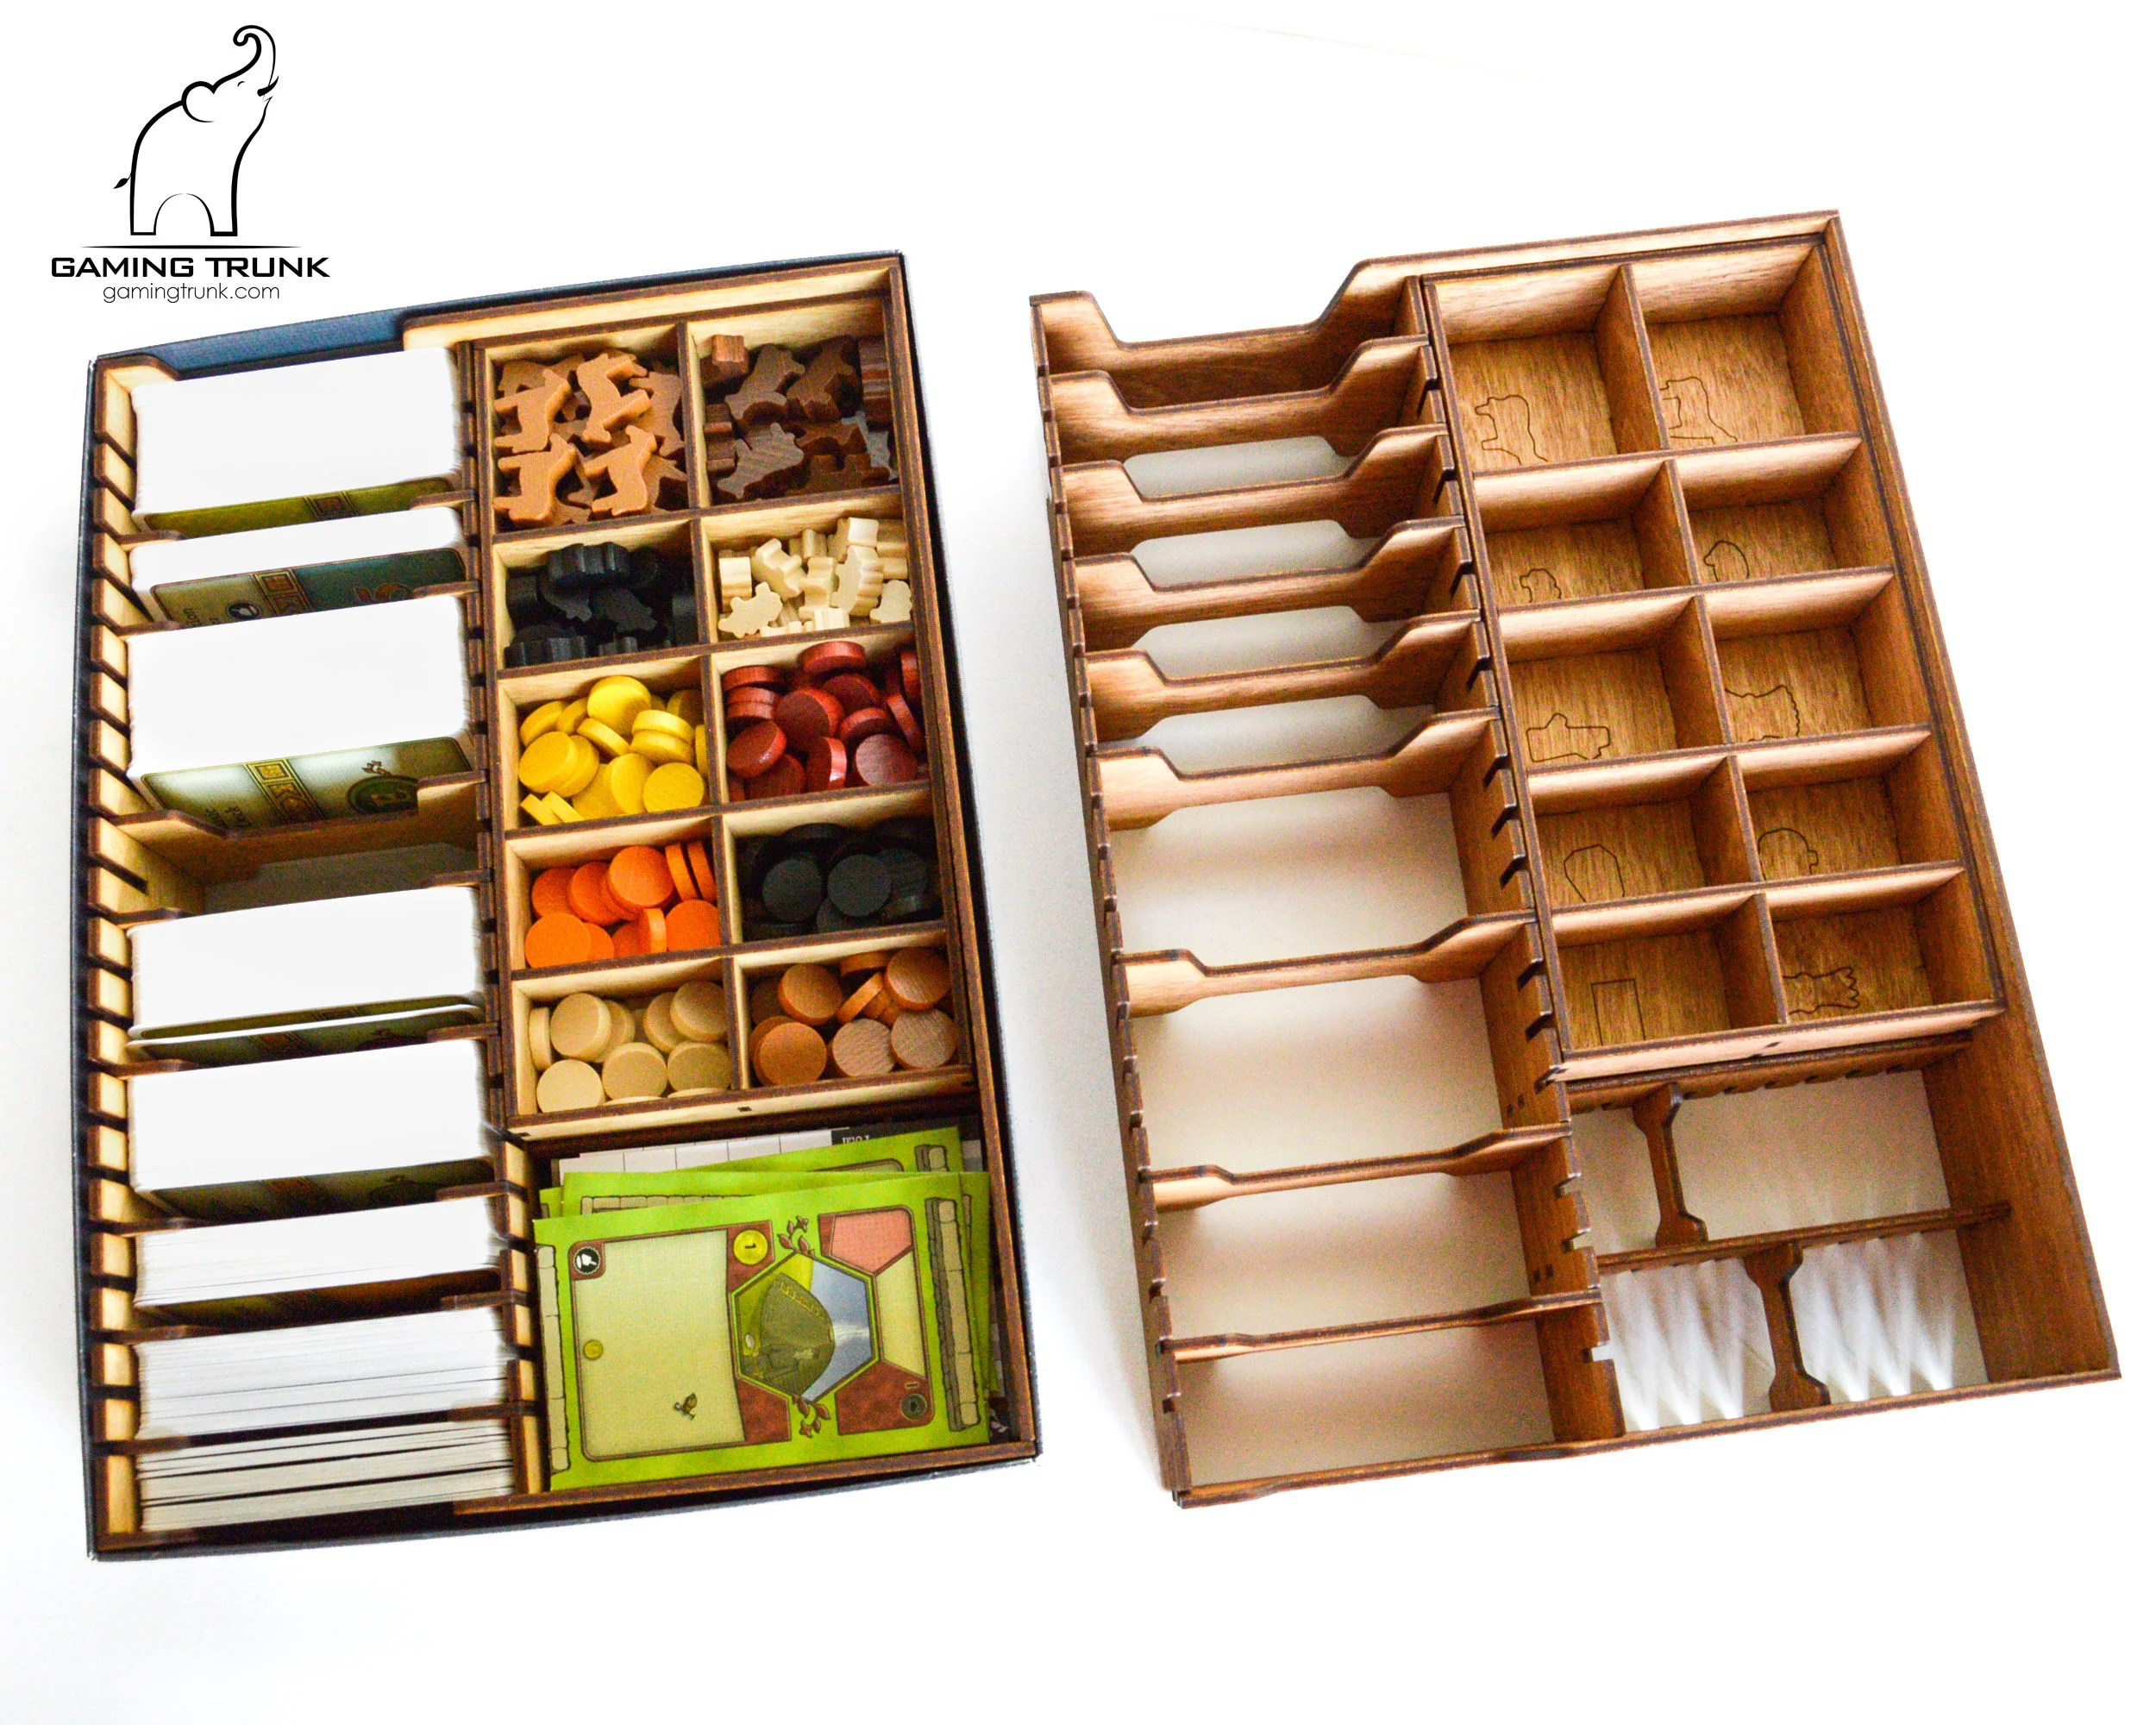 Organizer 2016 Organizer For Agricola Board Game Agricola Insert Agricola Box Board Game Organizer Board Game Insert Wooden Organizer